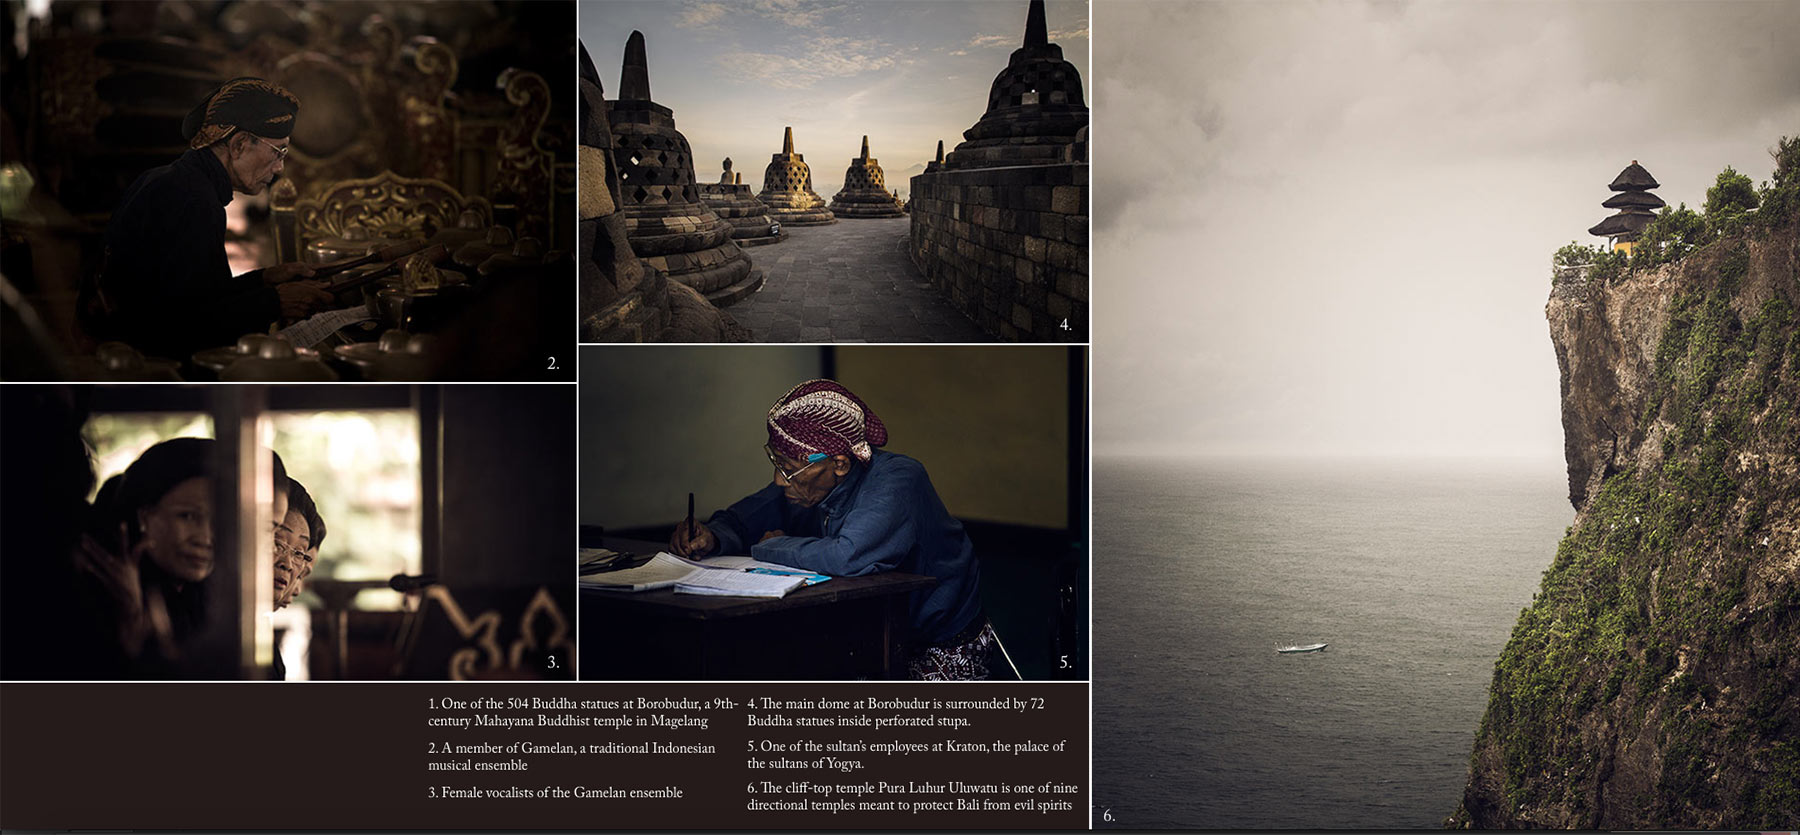 Collage of various images from Indonesia